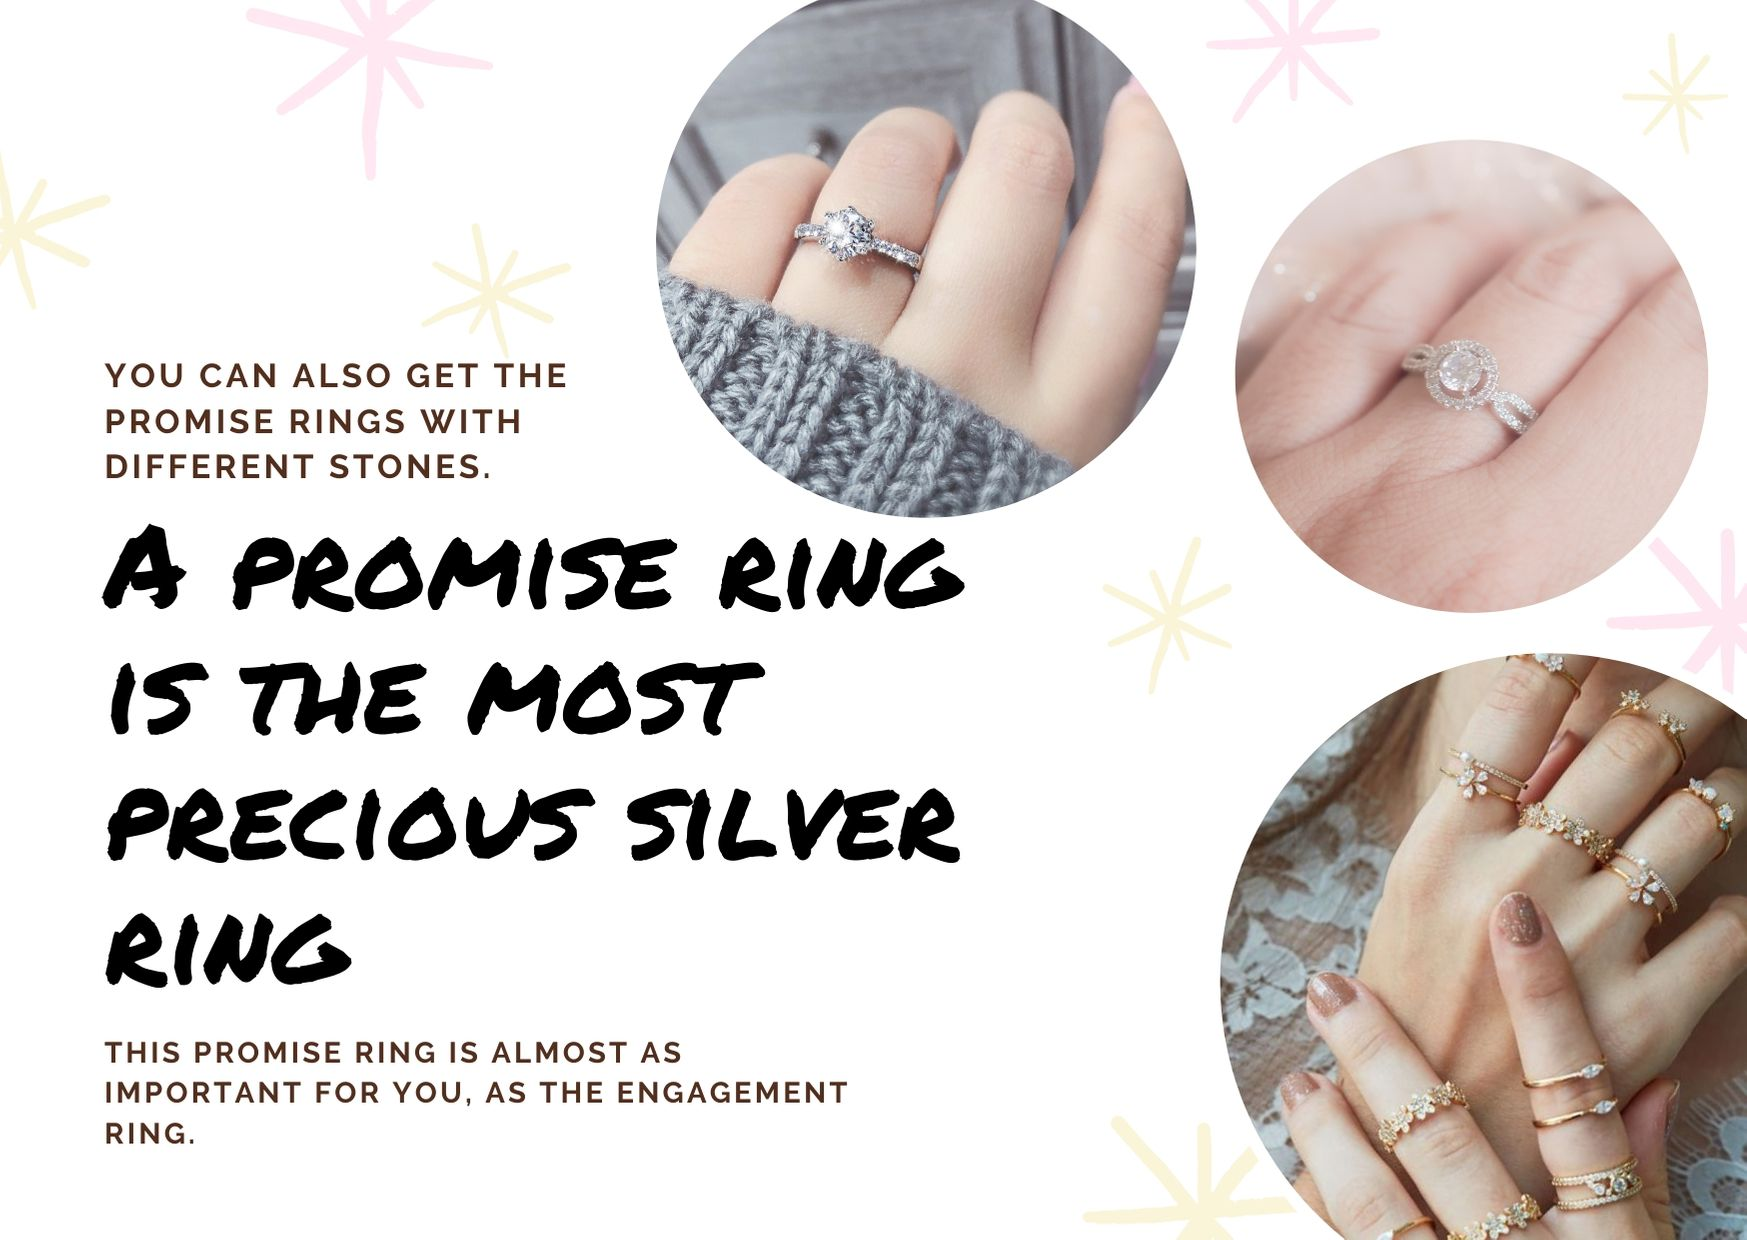 A promise ring is the most precious silver ring